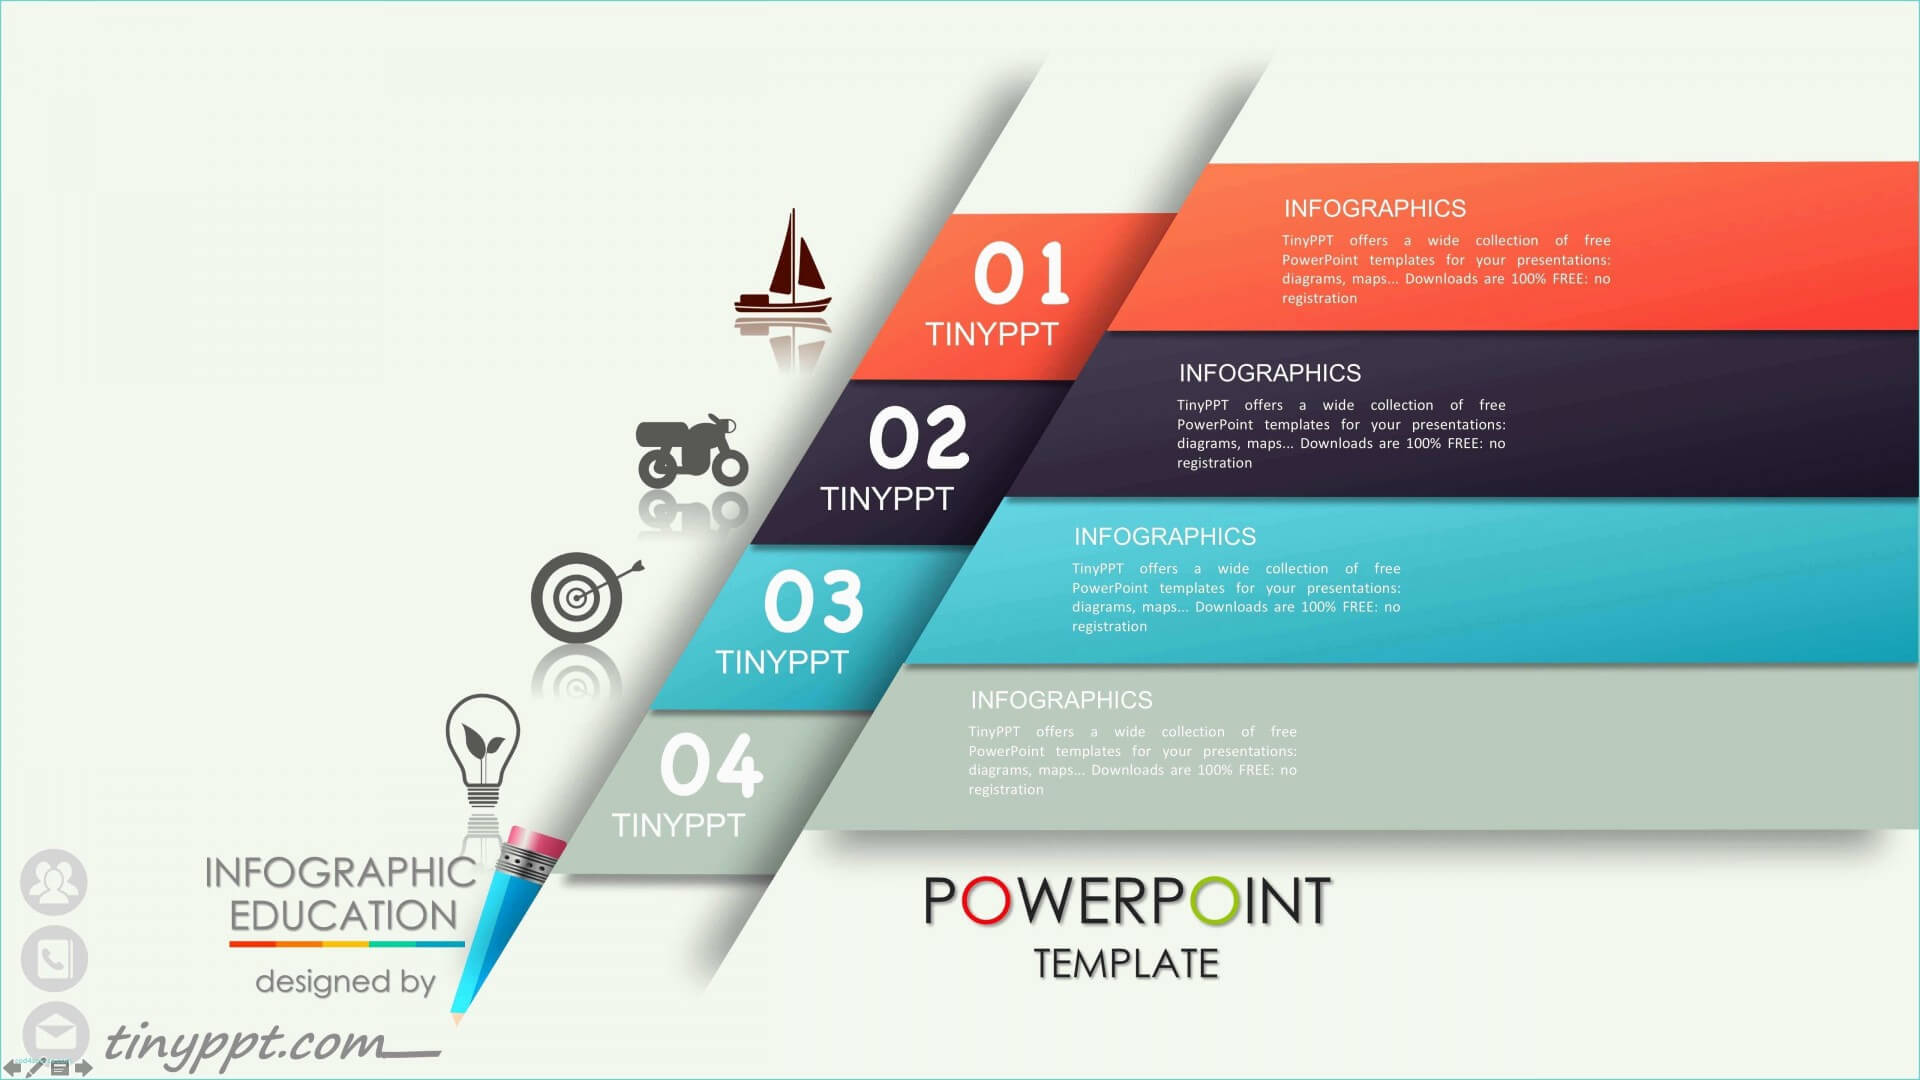 005 Business Plan Powerpoint Presentation Template Free Intended For Sample Templates For Powerpoint Presentation